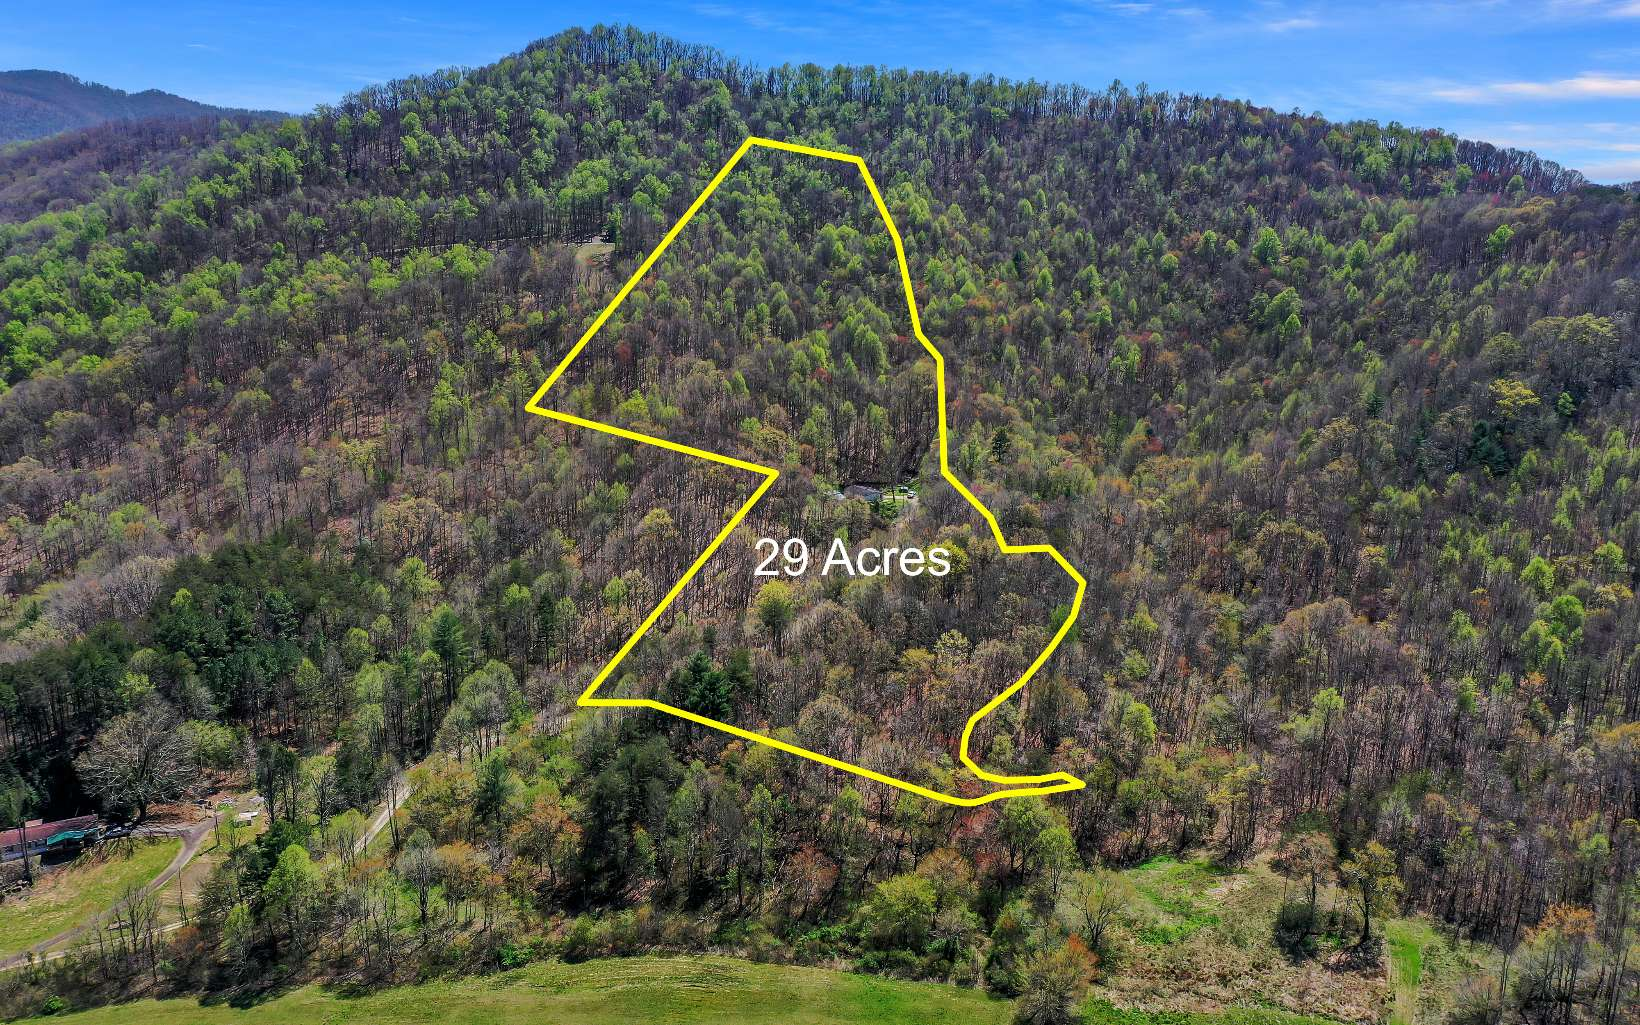 BEAUTIFUL 29 ACRE TRACT~UNRESTRICTED Nice ridge sites, spring, and a small creek. Very private and peaceful. Great Views!!! MOUNTAINTOP POND. Perfect for that private estate. Gravel road to the heart of the property. 32x48 Doublewide with electric and septic in place.Property does have its Mineral Rights.Easy Access to Ducktown,TN, Murphy NC & McCaysville, GA